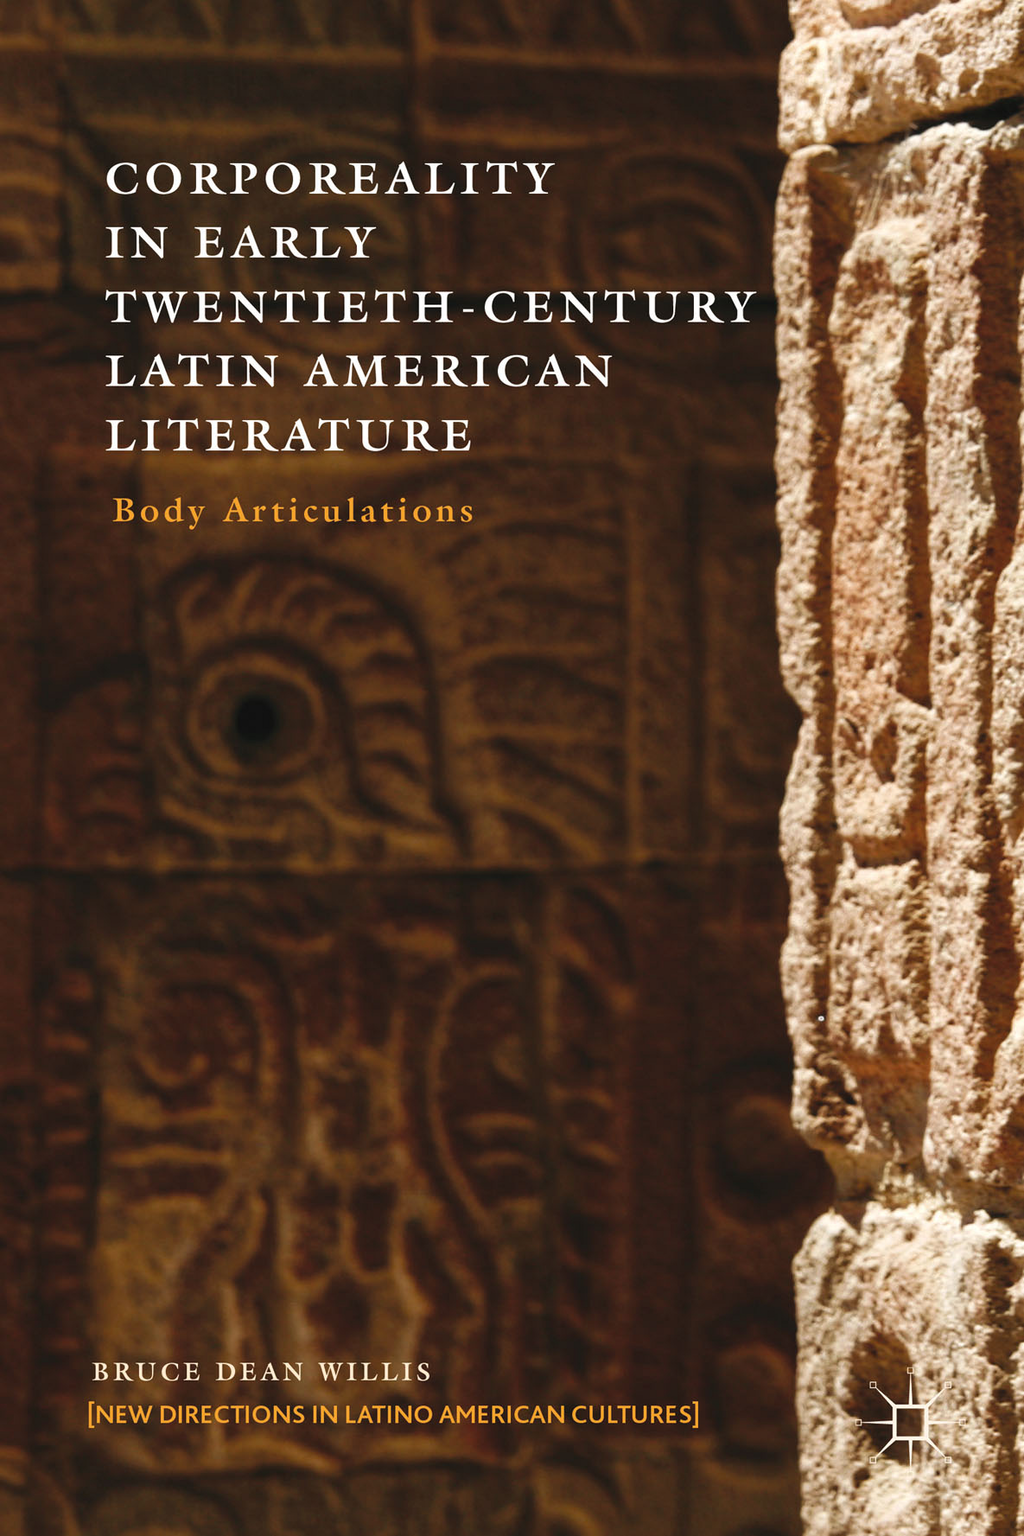 Corporeality in Early Twentieth-Century Latin American Literature